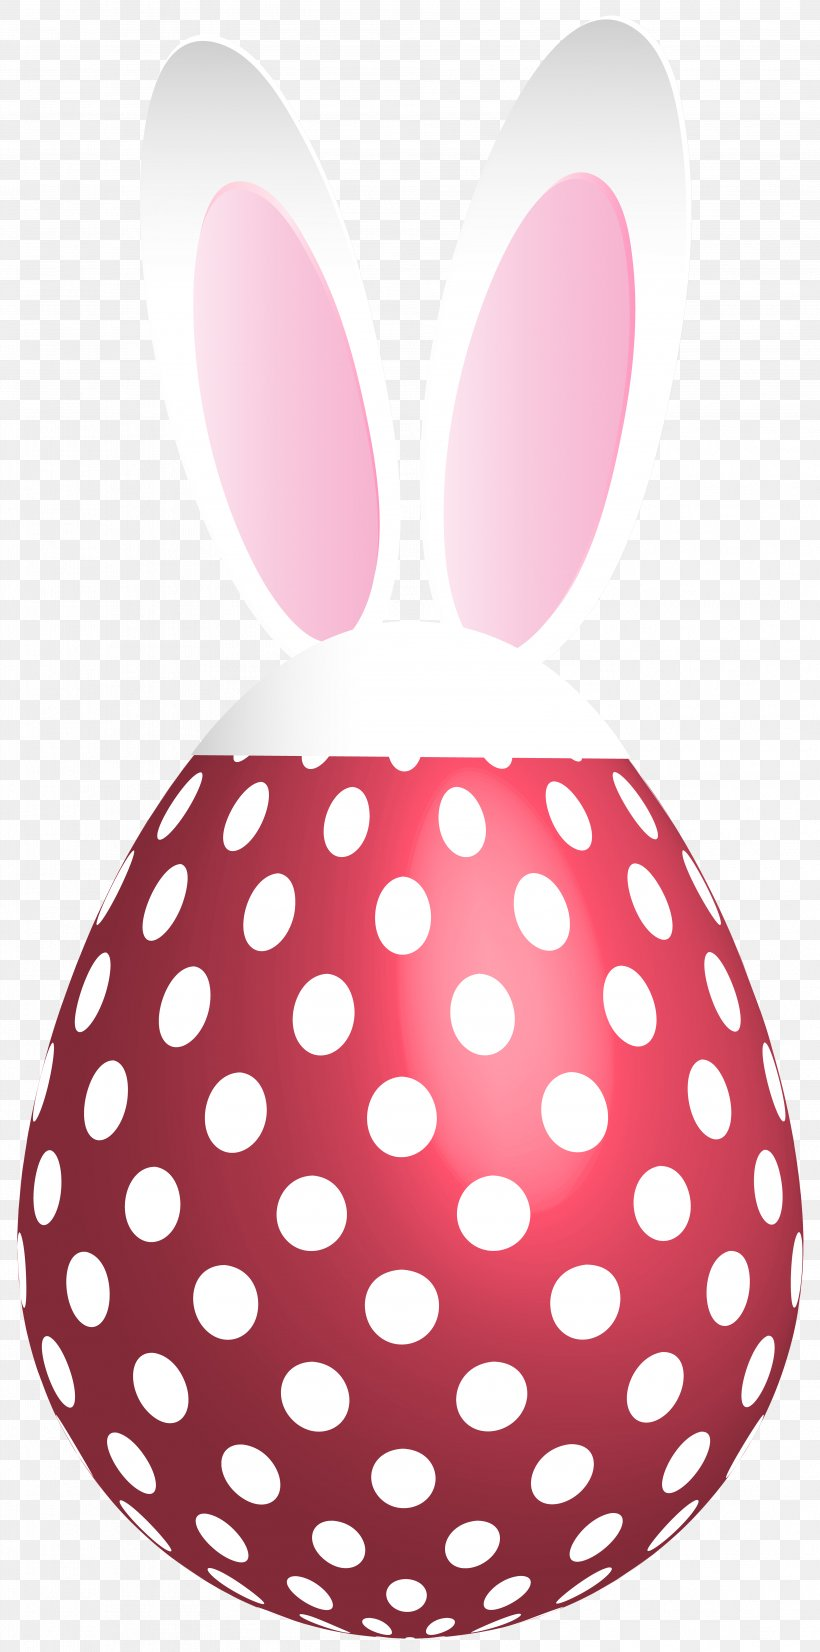 Polka Dot Stock Photography Clip Art, PNG, 3969x8000px, Wedding Invitation, Clip Art, Easter, Easter Bunny, Easter Egg Download Free